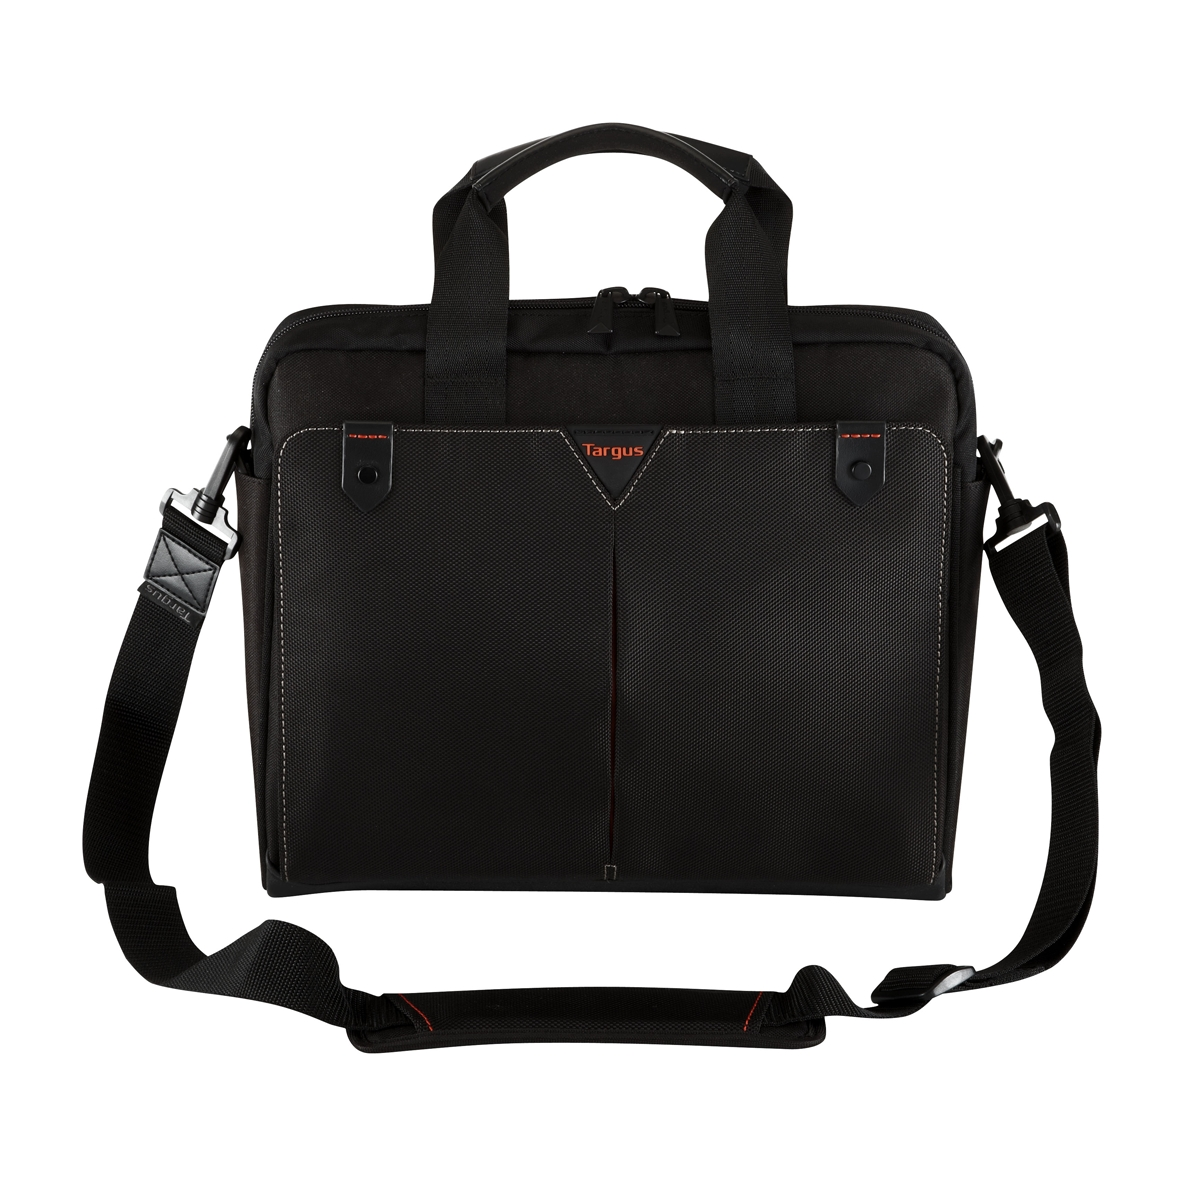 "Classic+ 13-14.1 ""  Topload Laptop Case - Black"